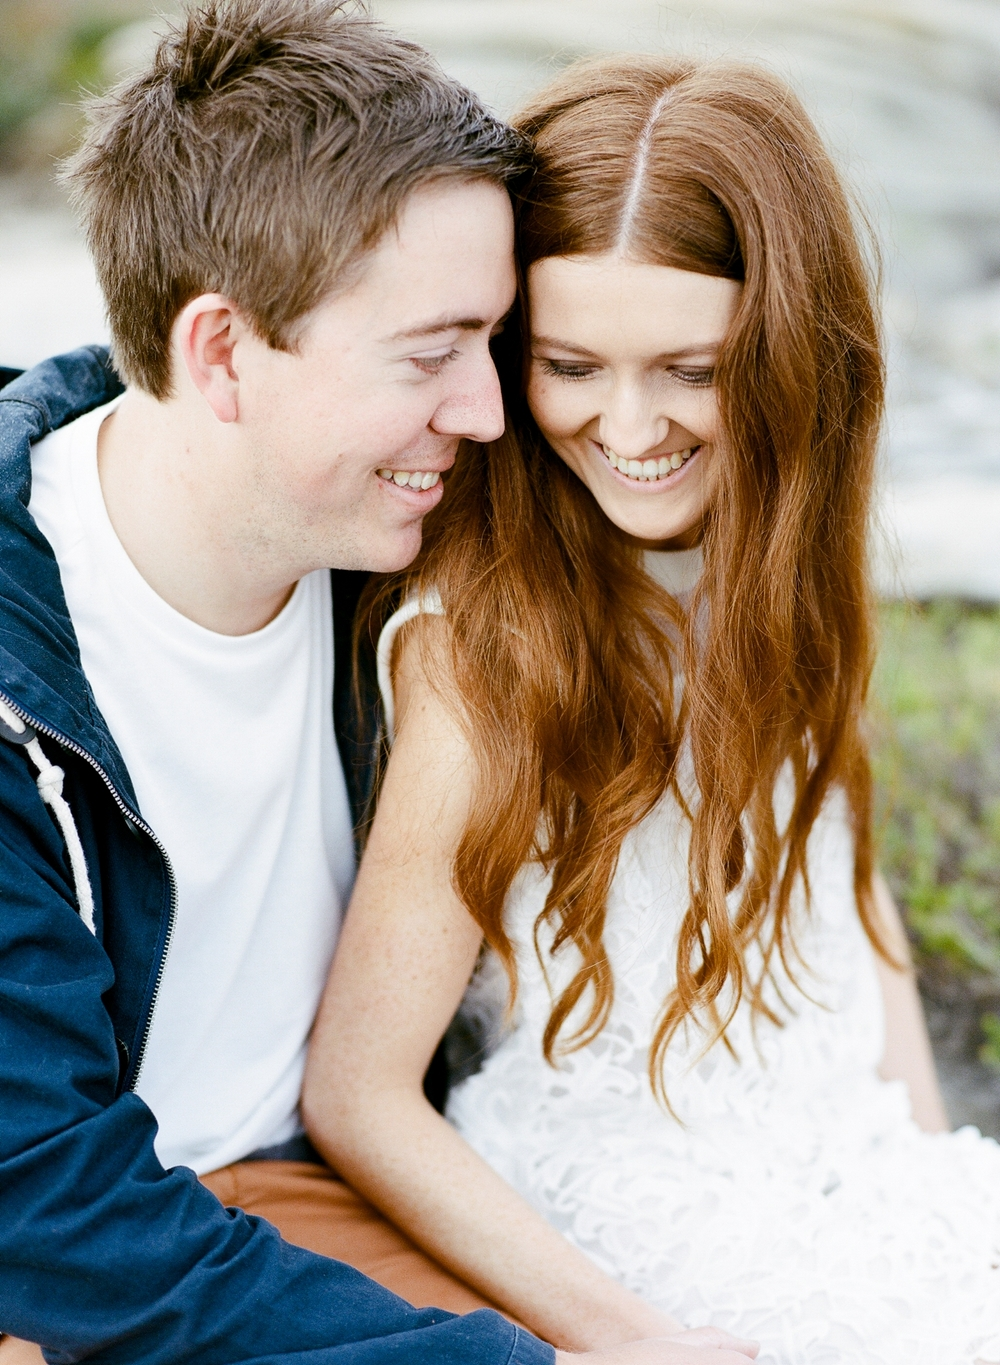 Sydney engagment shoot by Wedding photographer Glen Edwards_0709.jpg